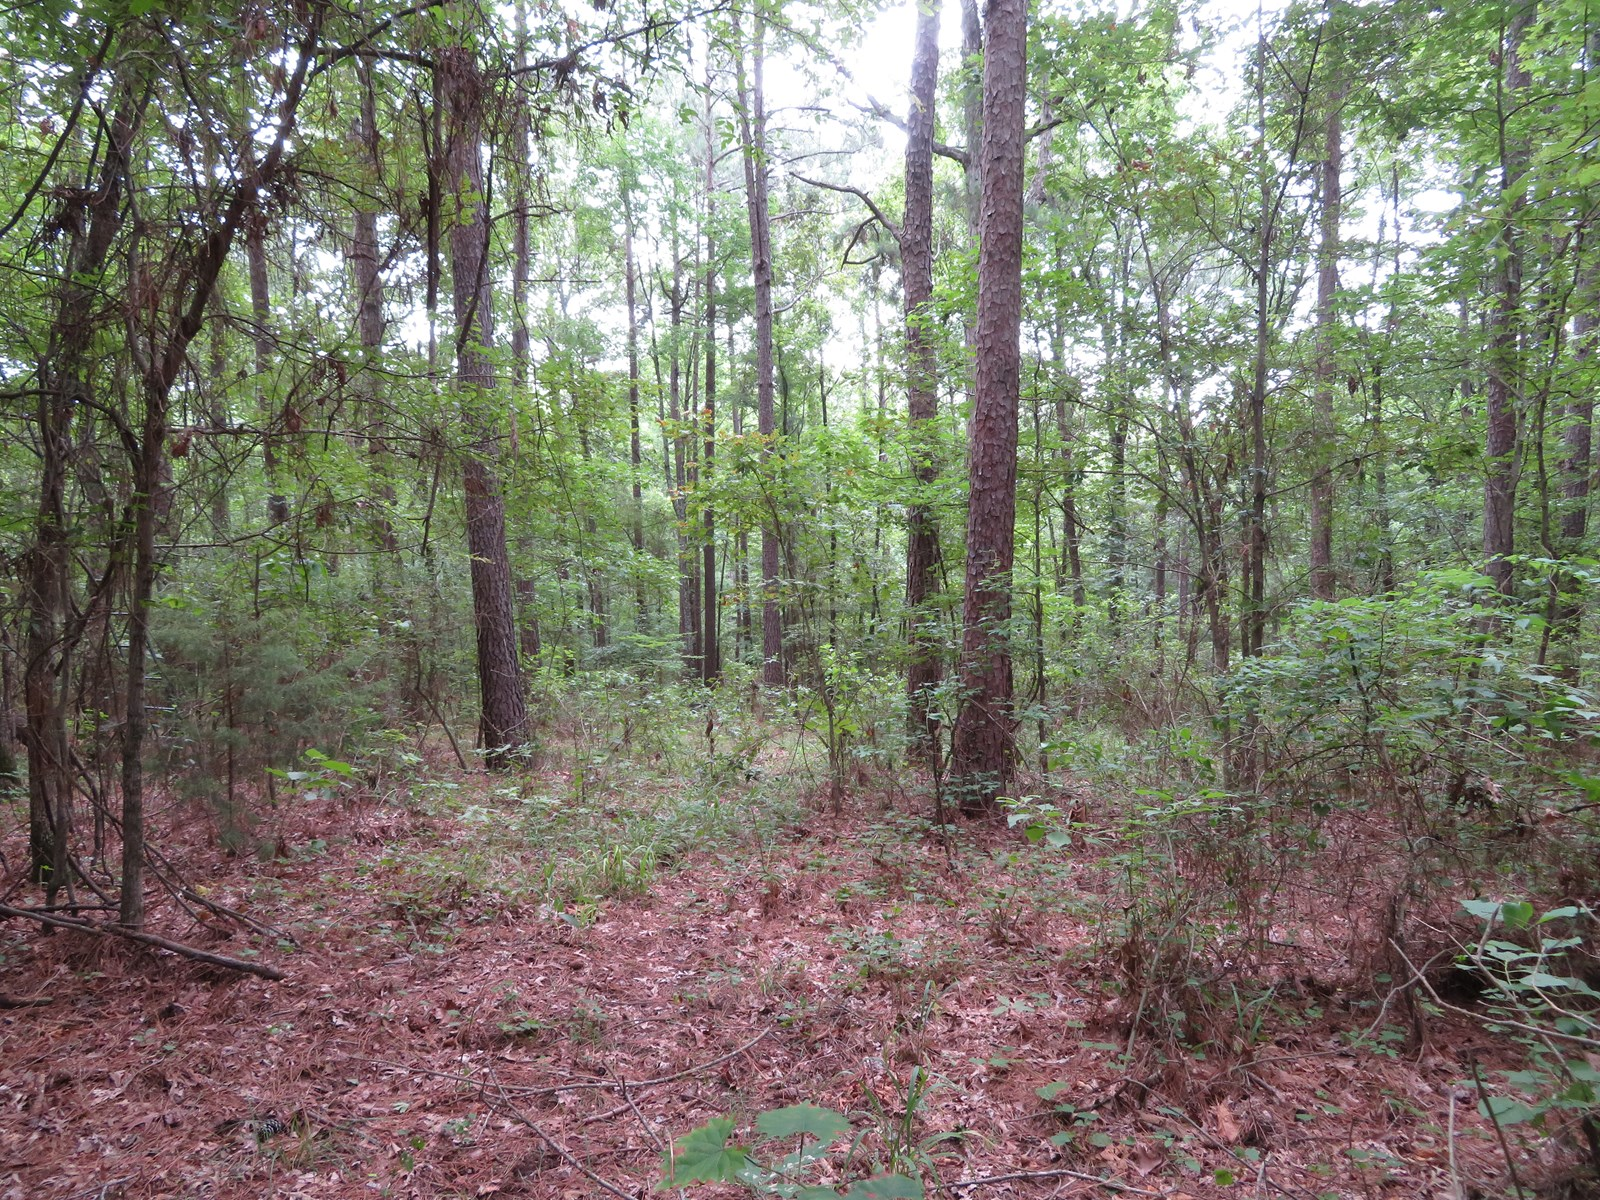 Getaway Recreational Land for Sale Cass County, TX